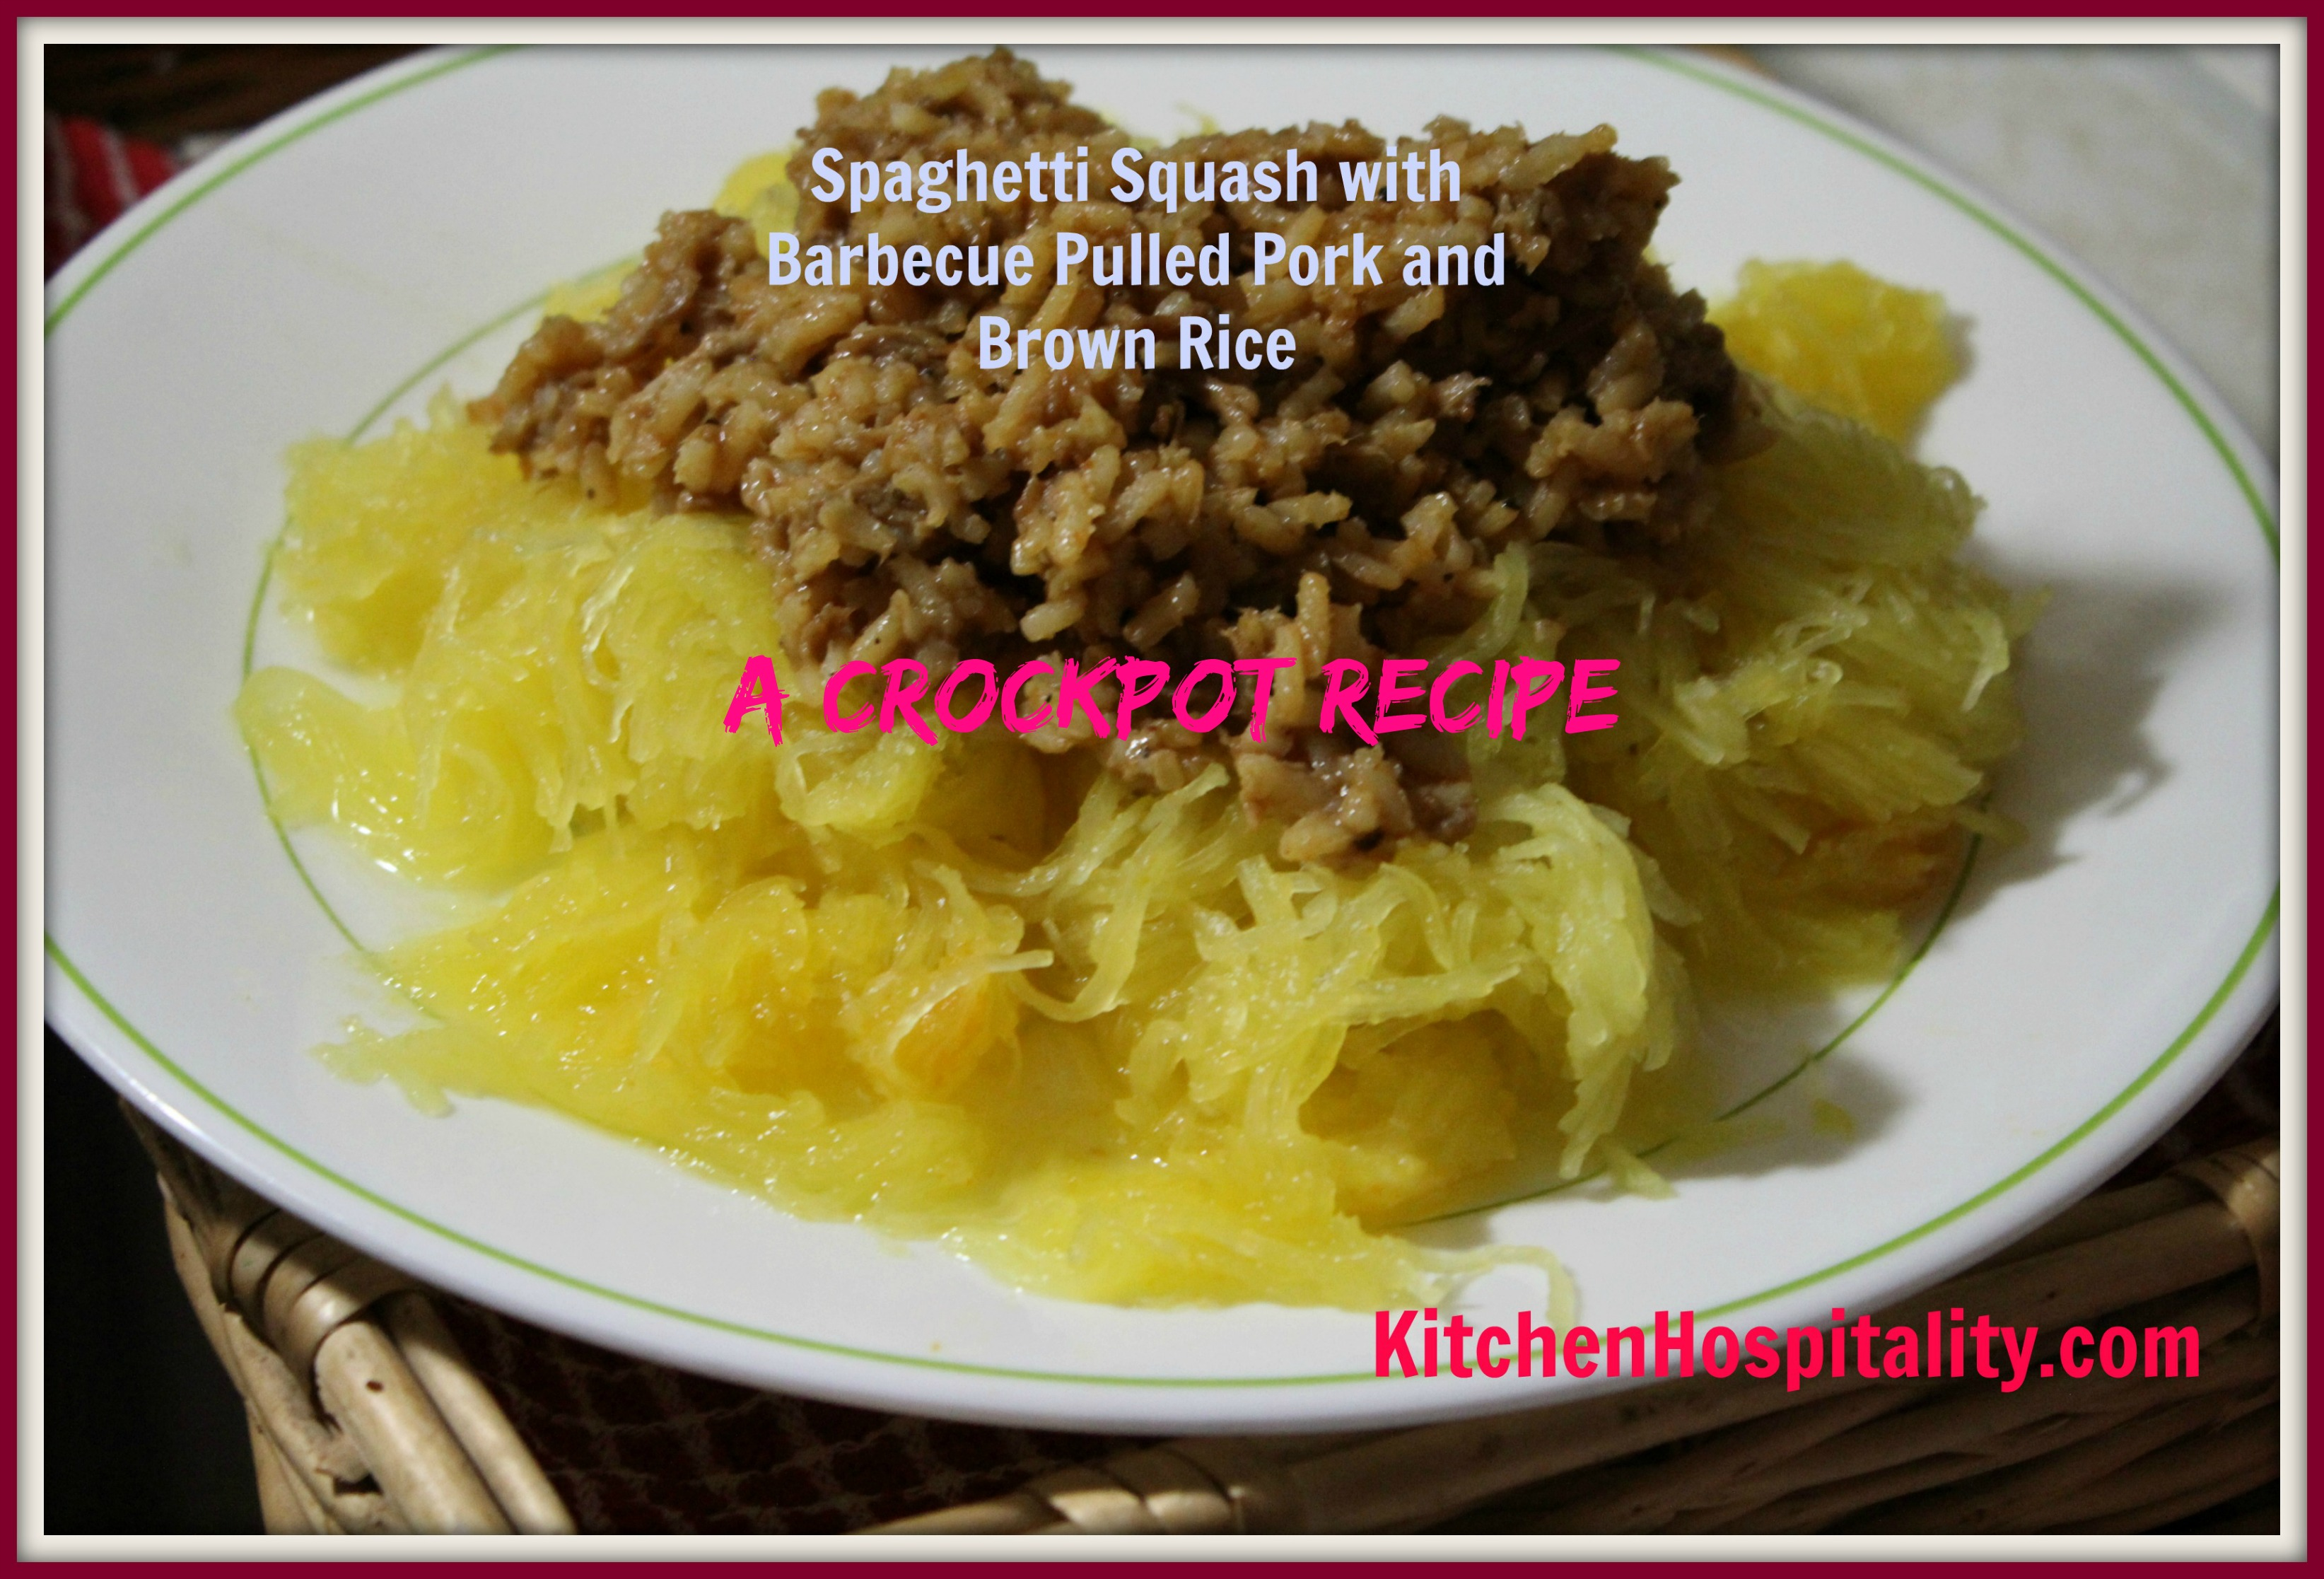 Spaghetti Squash with Barbecue Pulled Pork and Brown Rice